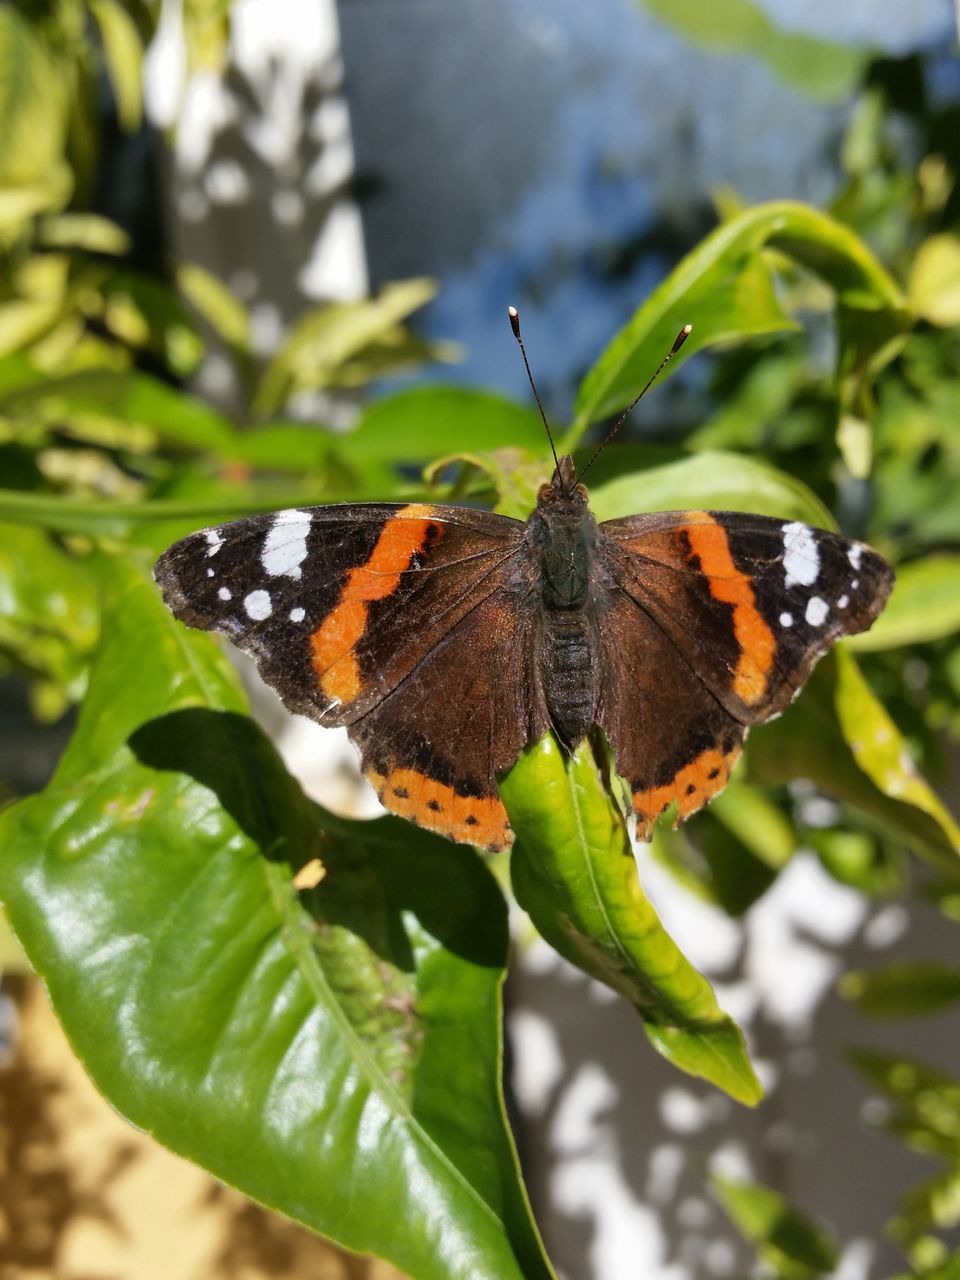 animal themes, one animal, insect, animals in the wild, leaf, butterfly - insect, plant, nature, animal wildlife, butterfly, green color, no people, close-up, outdoors, focus on foreground, day, beauty in nature, growth, fragility, freshness, perching